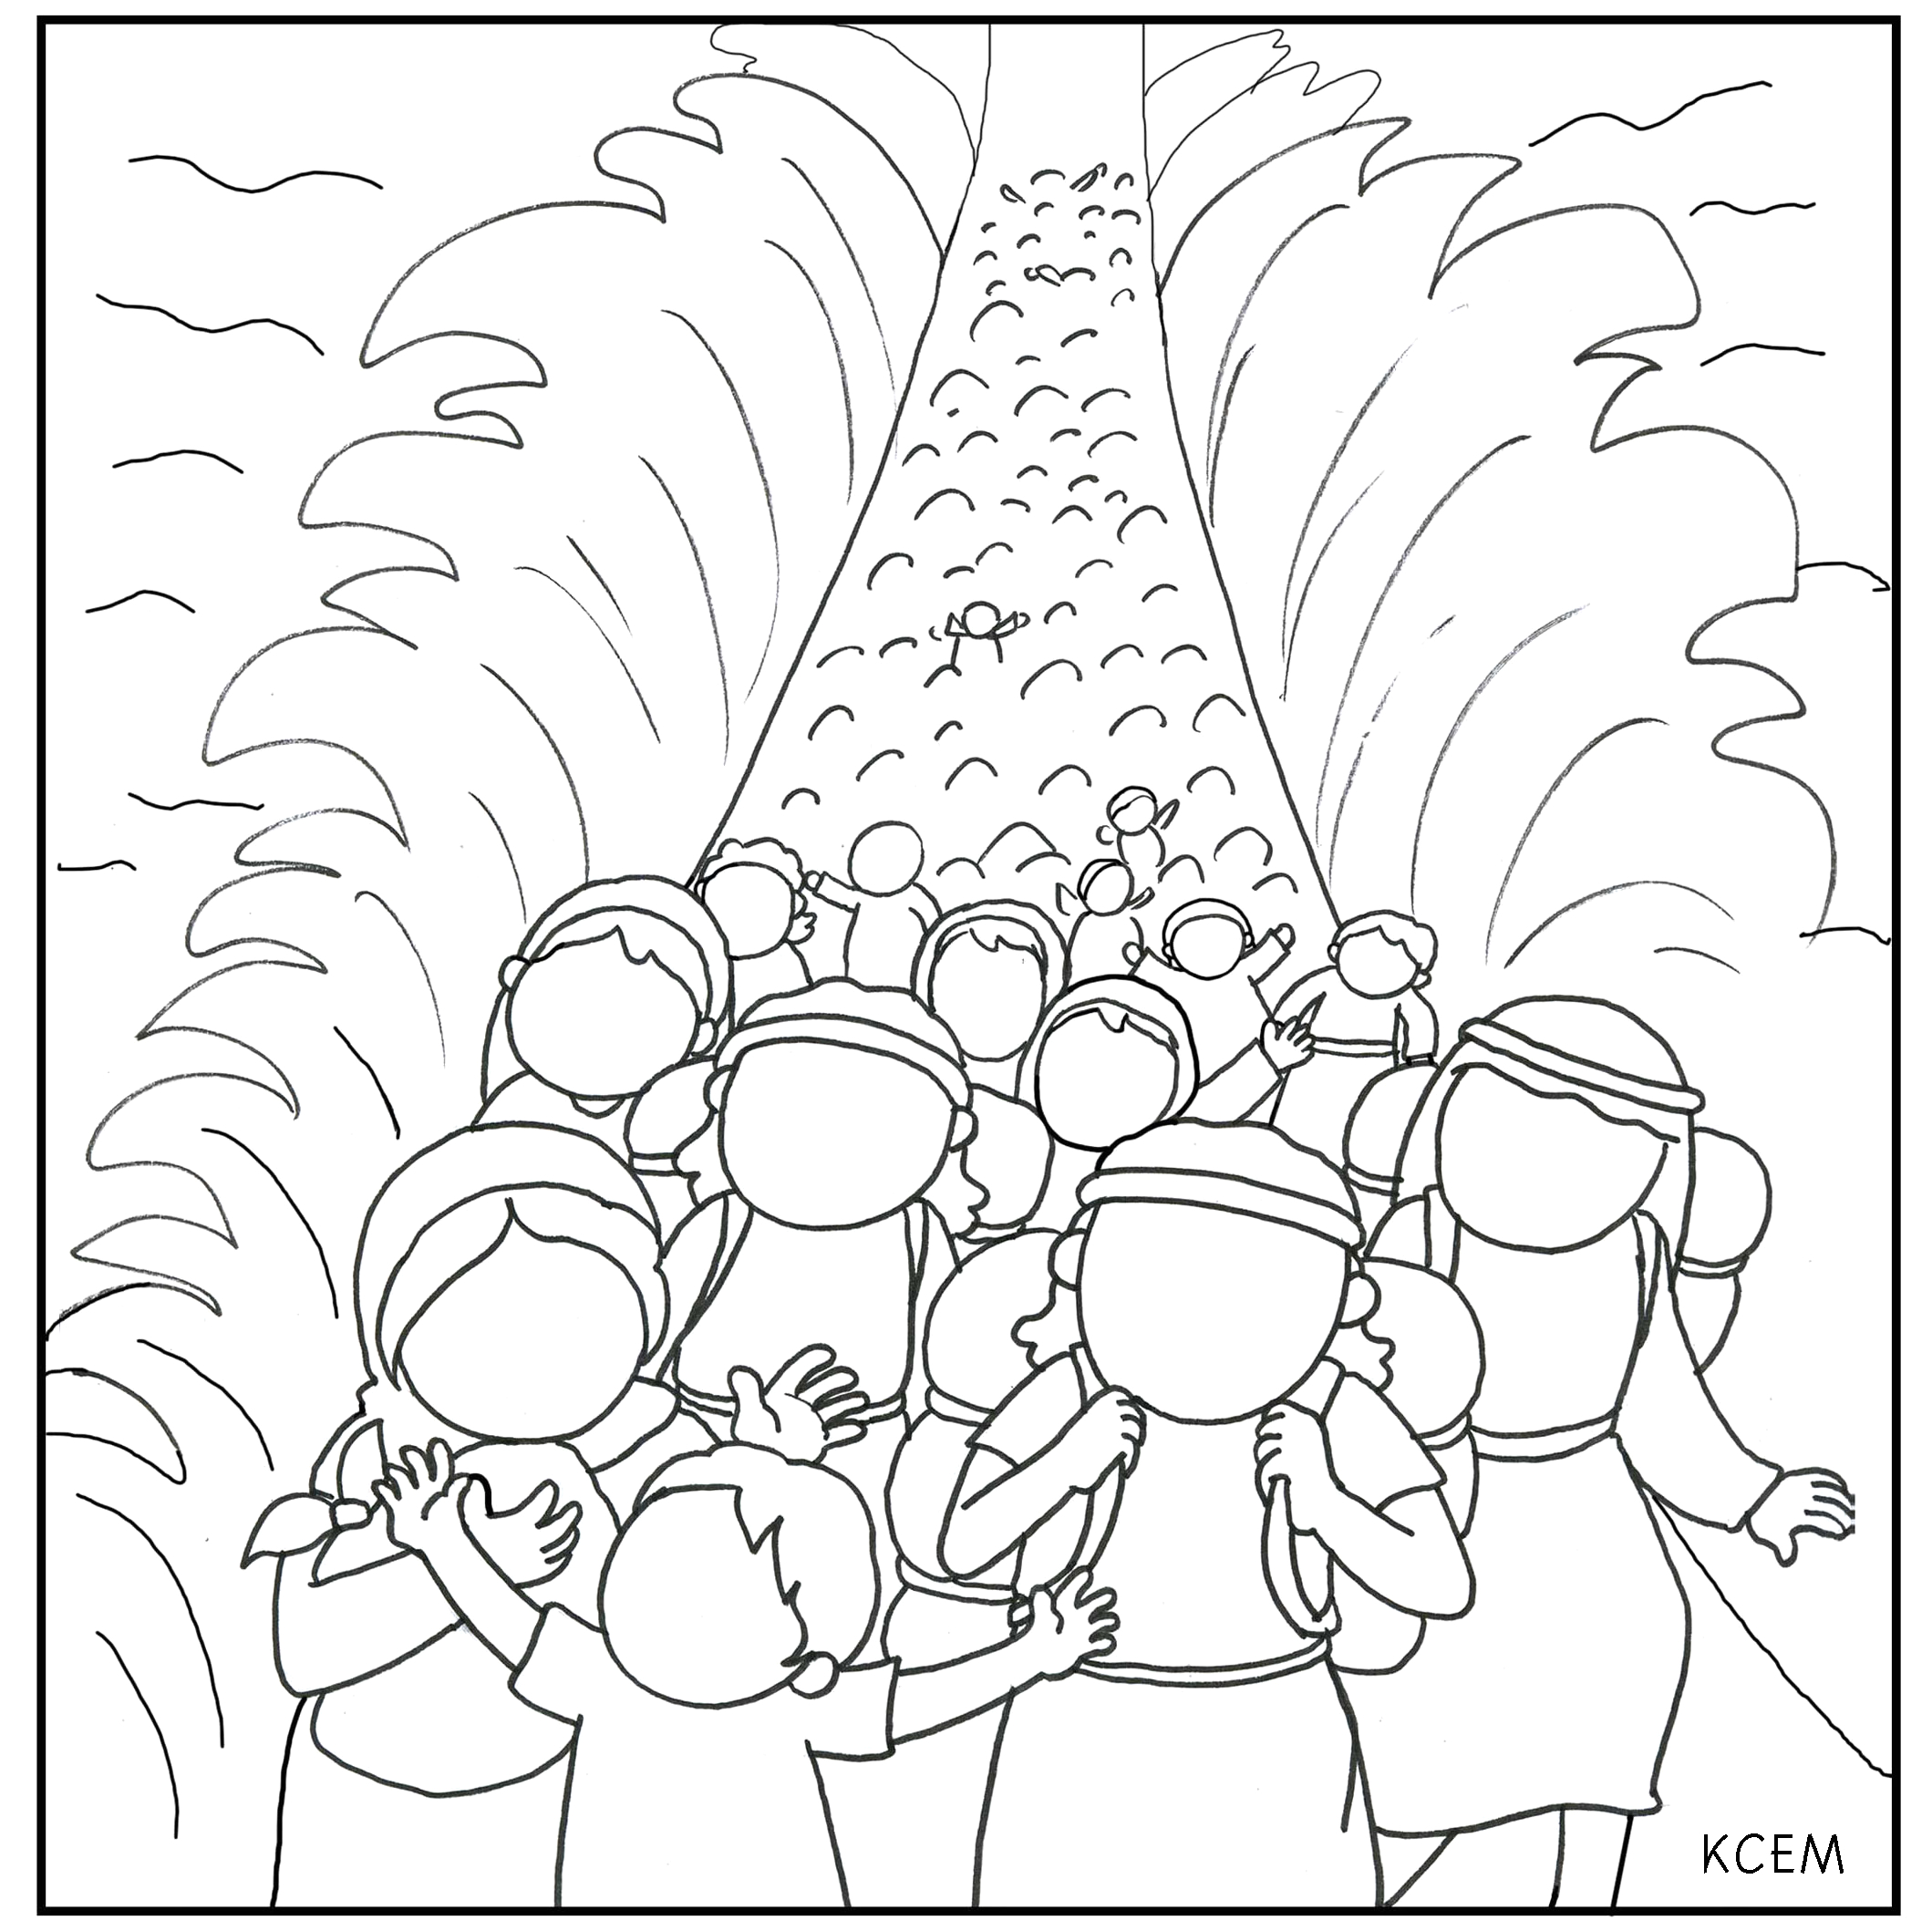 Parting Of the Red Sea Coloring Page Moses Parting the Red Sea Coloring Page Coloring Home